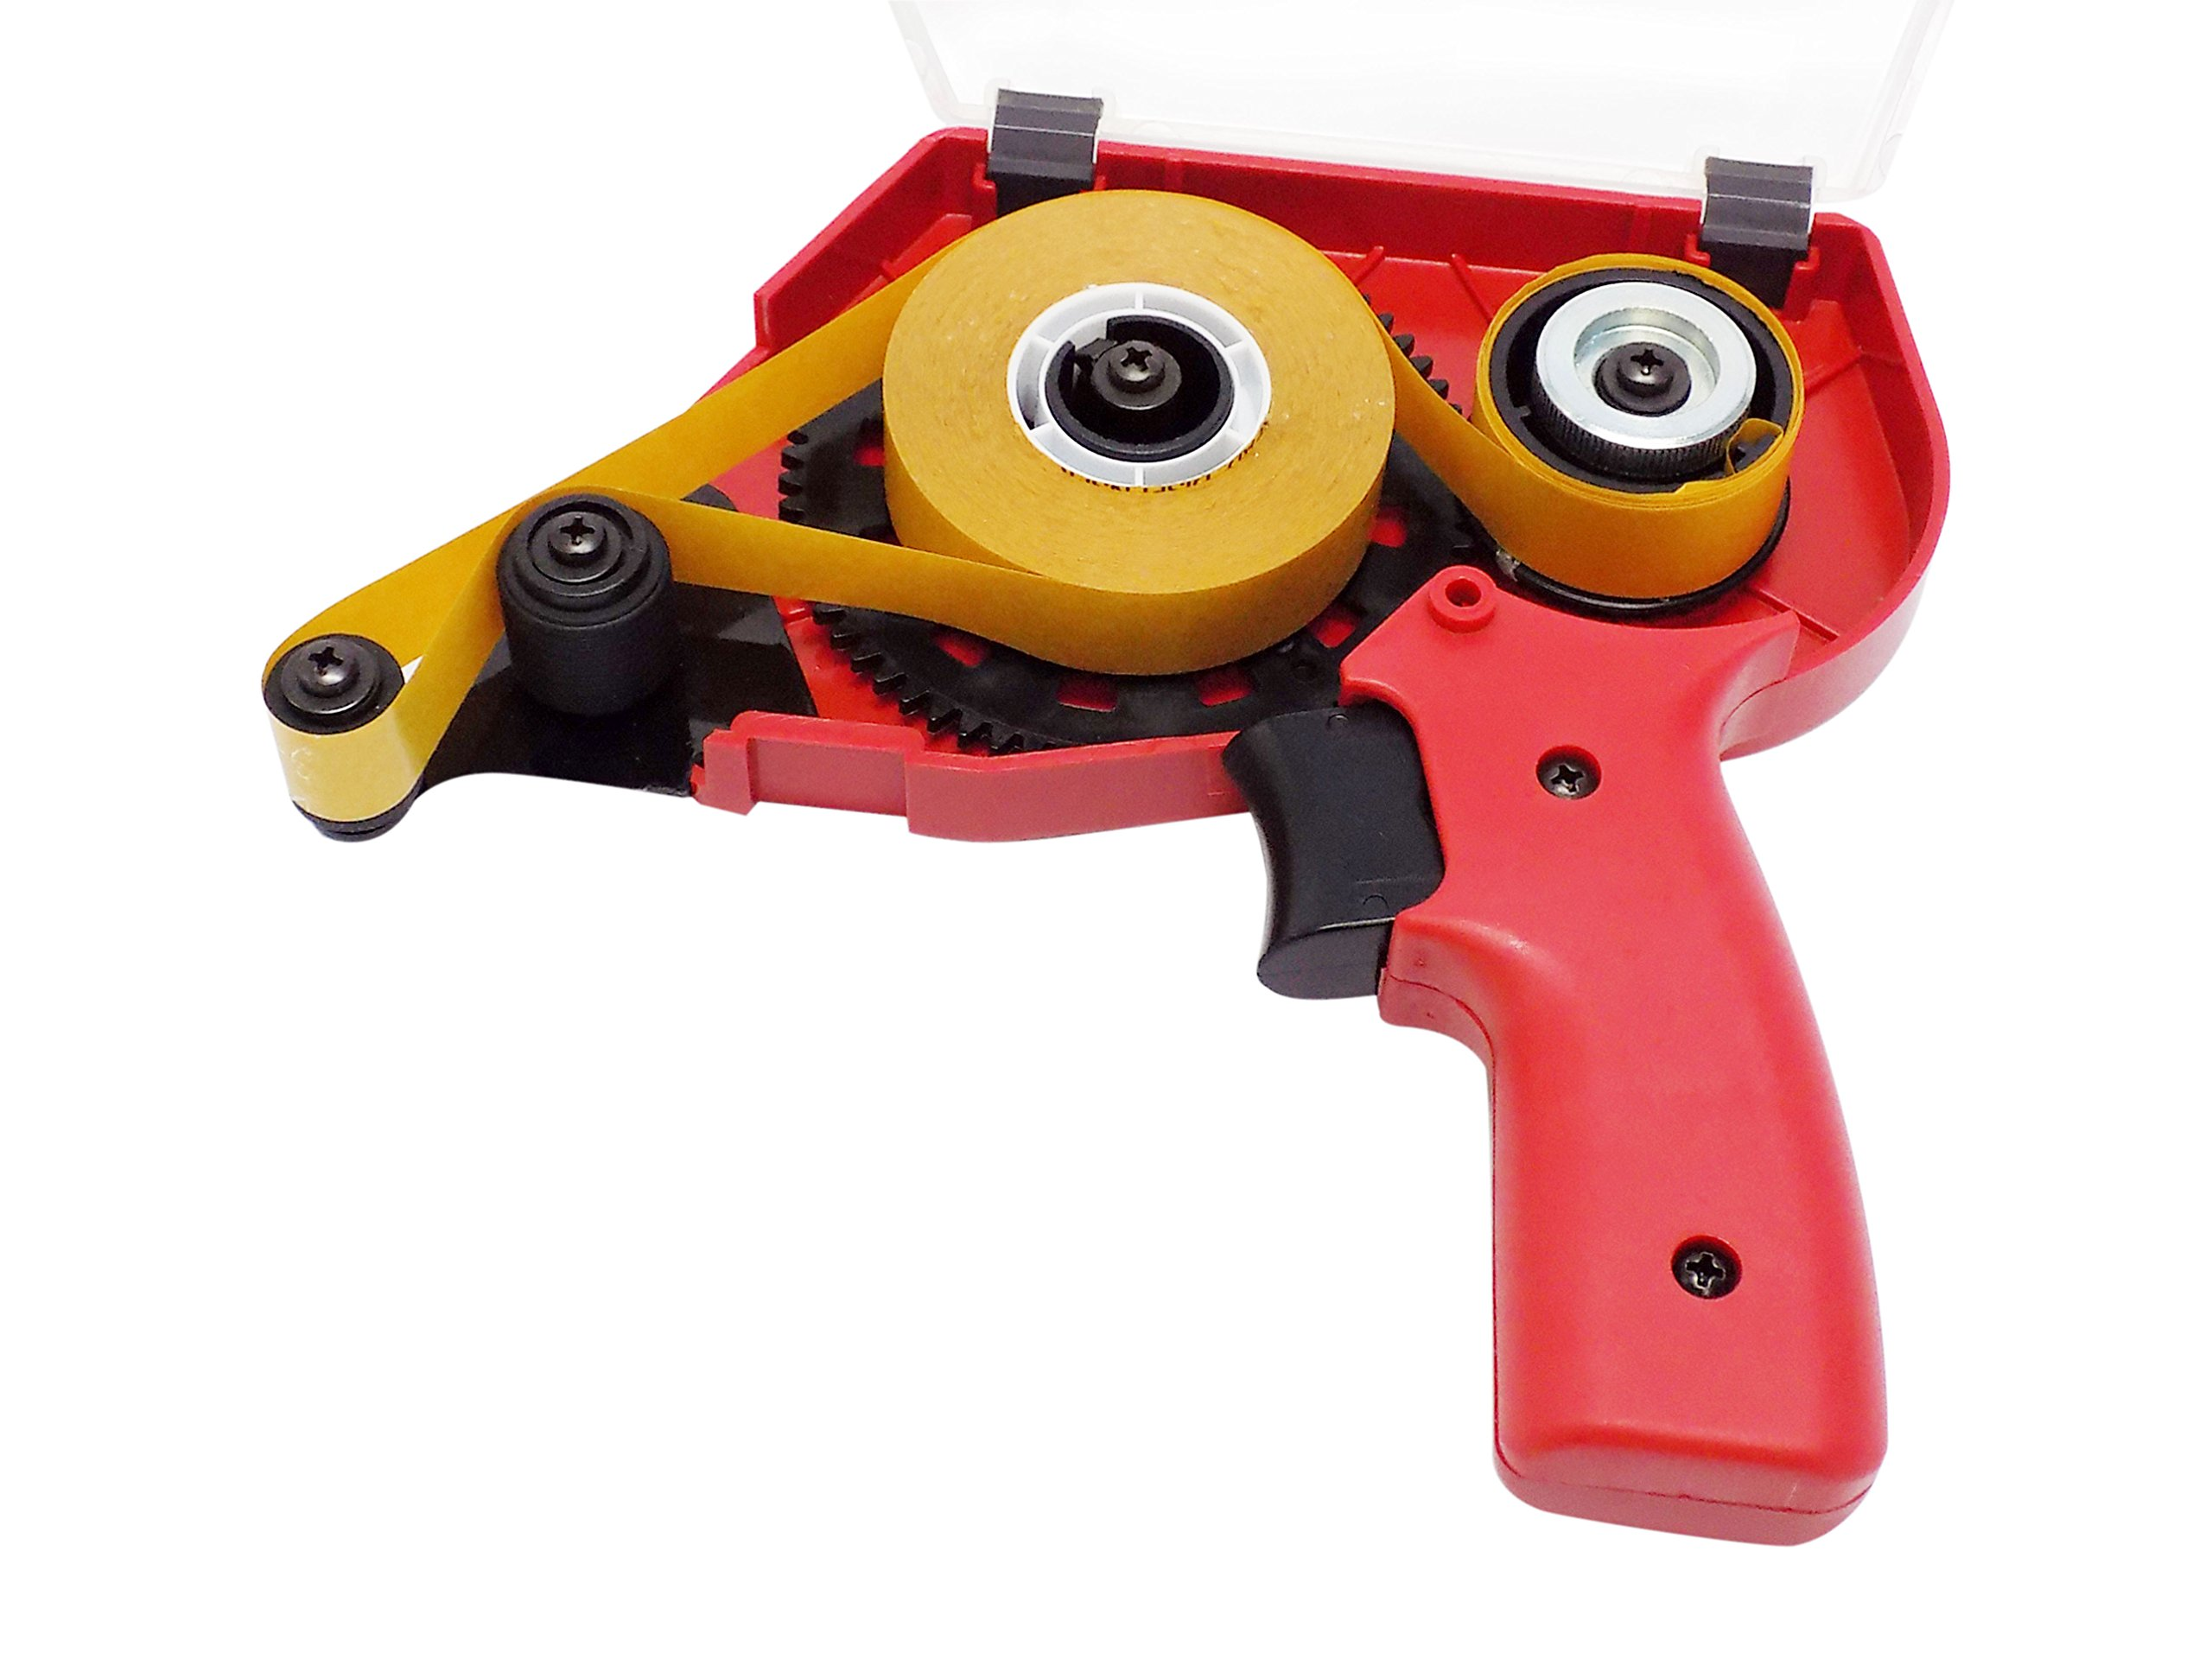 WOD ATG-50 ATG Tape Dispenser Gun for Transfer Tape, Adhesive Applicator: Dispenses 1/4 in, 3/8 in, 1/2 in, and 3/4 in. Wide on 1 in. Core (Comes with One Free 1/4'' in. ATG Tape as a Free Sample) by WOD Tape